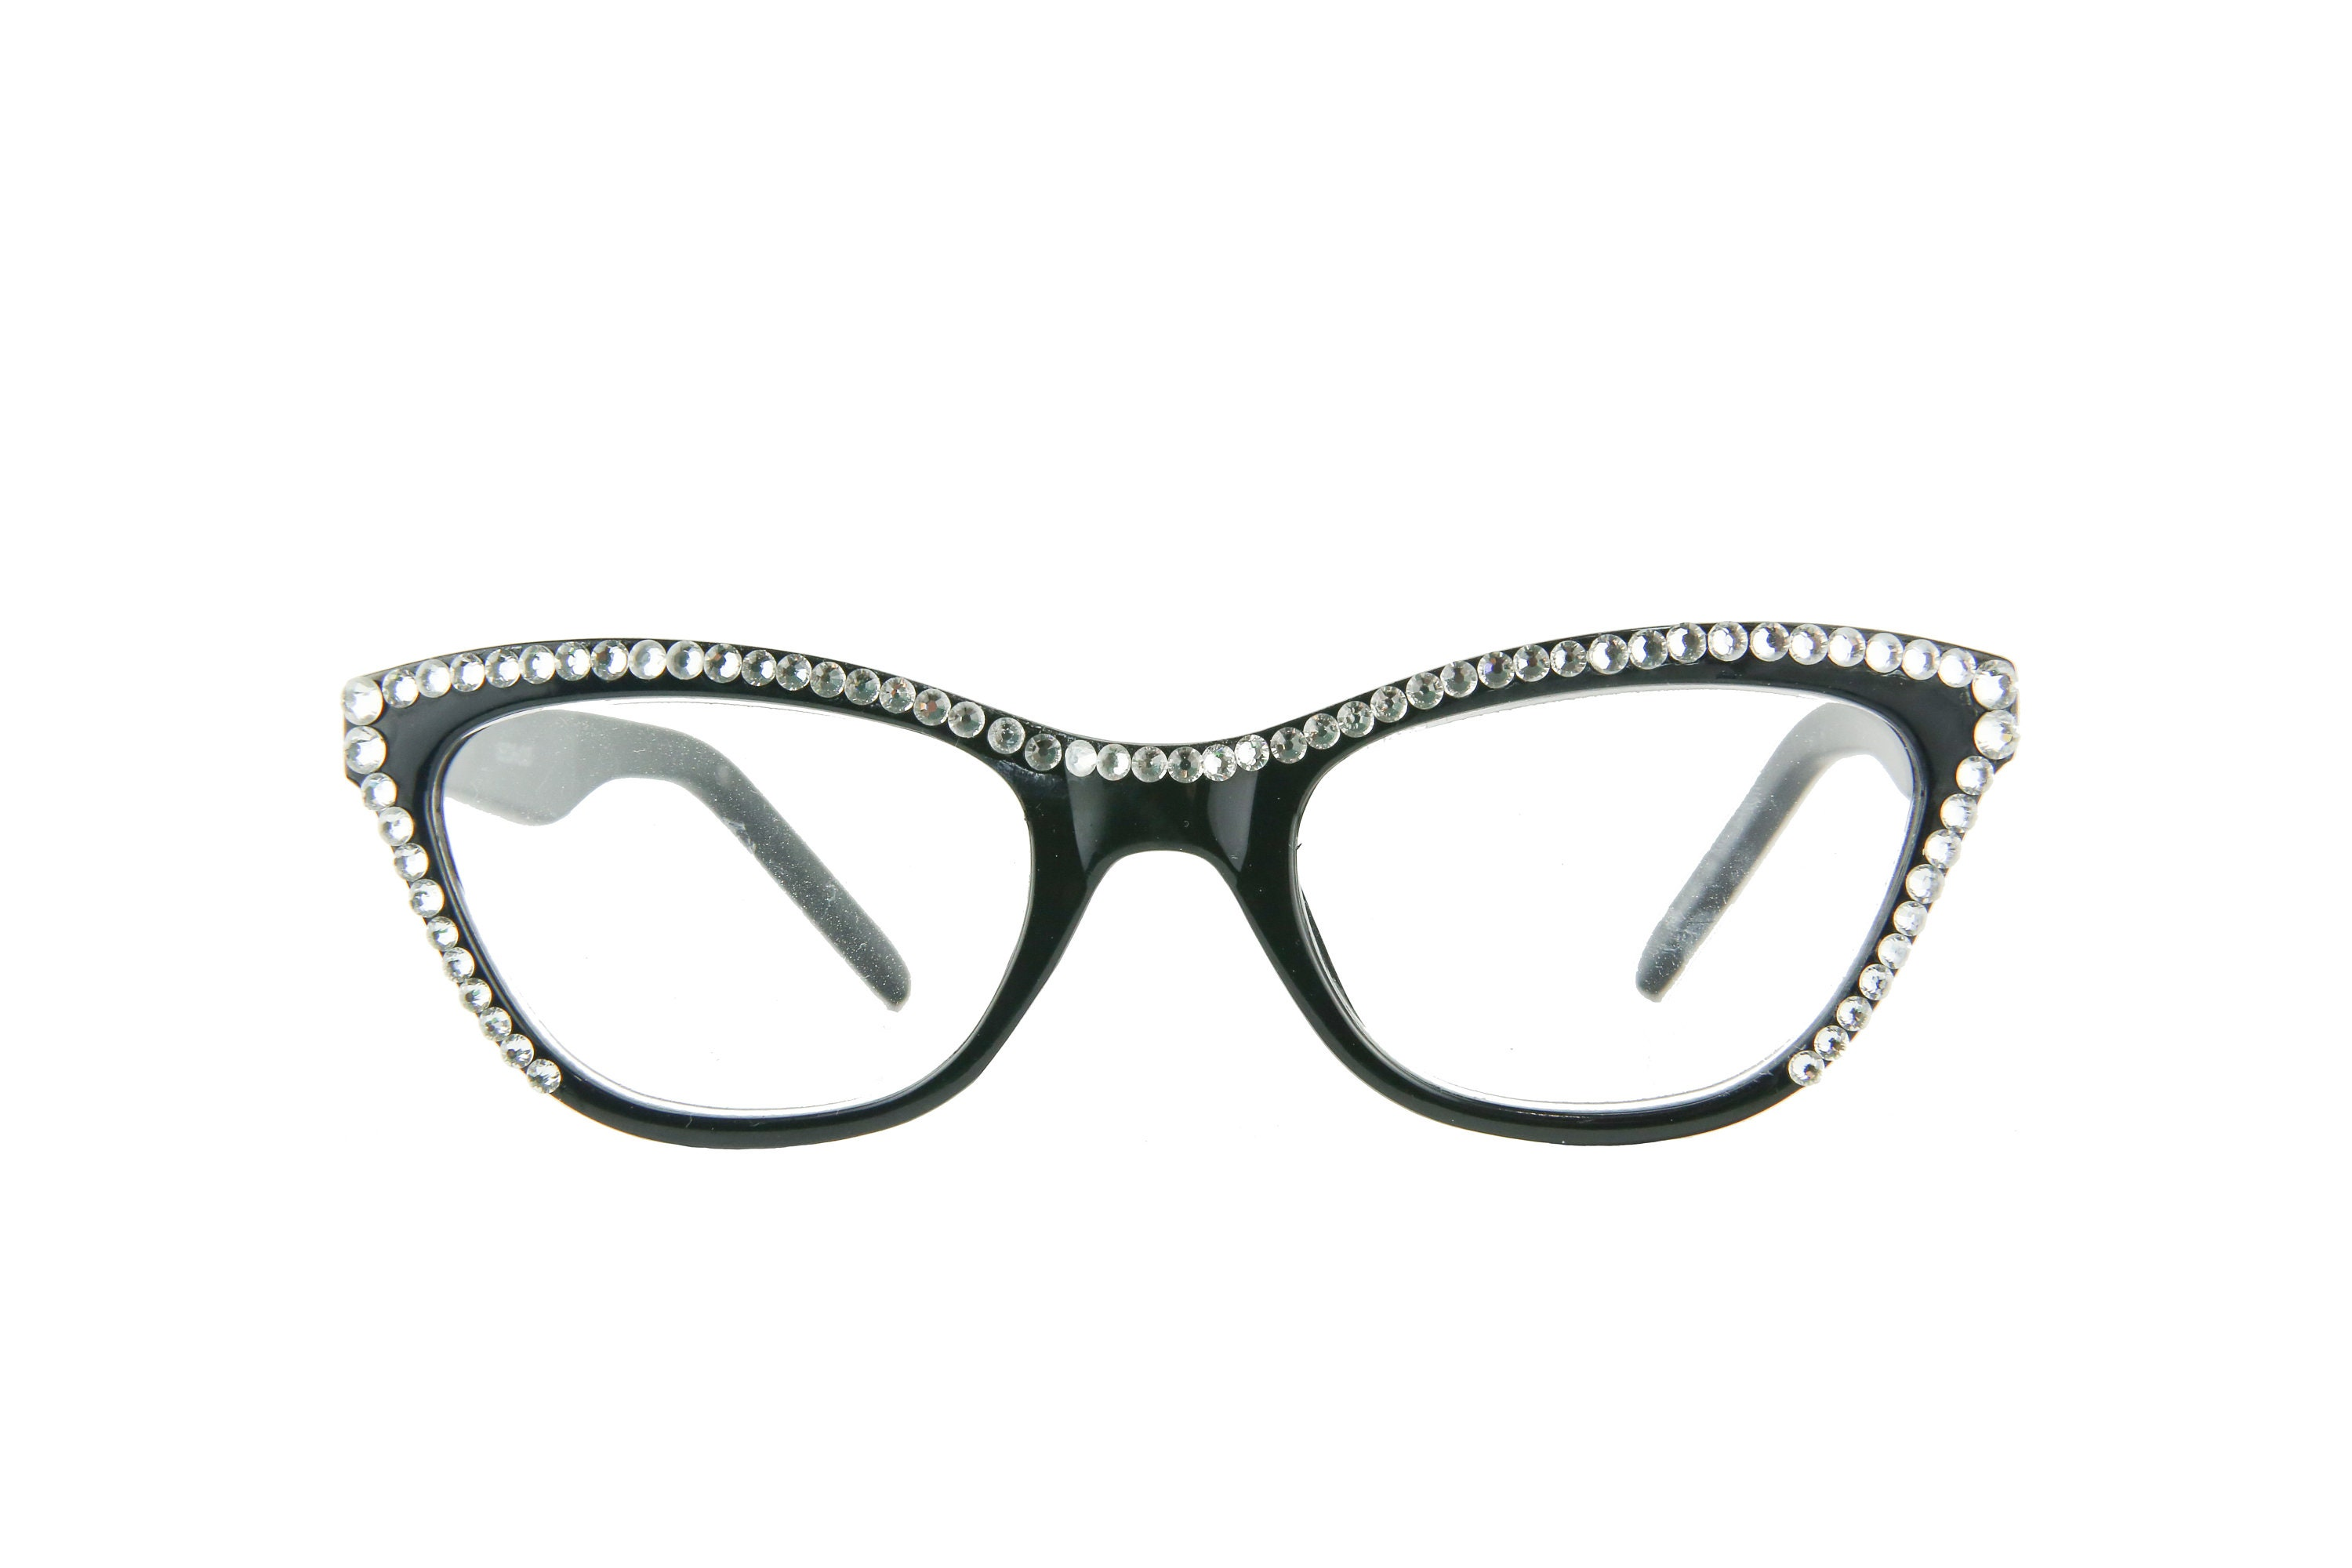 cc6194559c CAT EYE Reading Glasses with Swarovski Crystals. gallery photo gallery photo